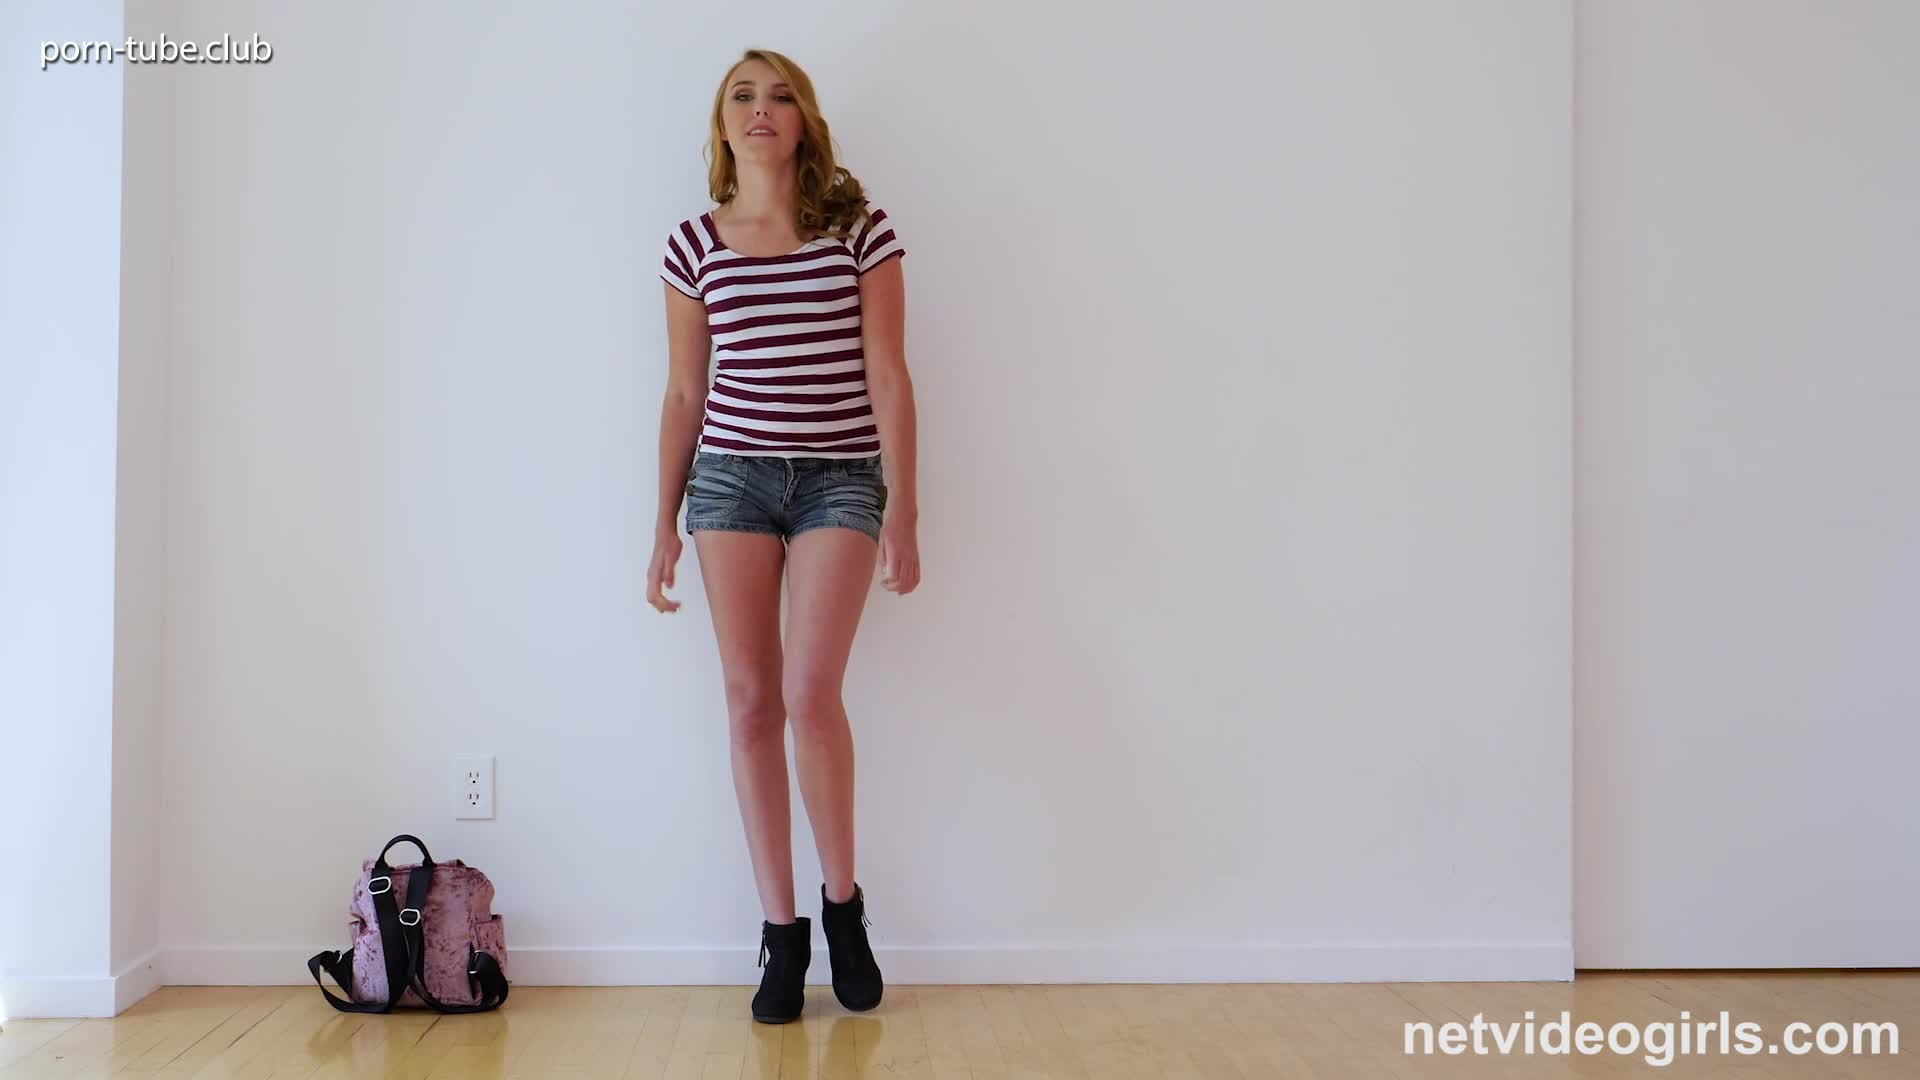 NetVideoGirls 17.08.29 Summer